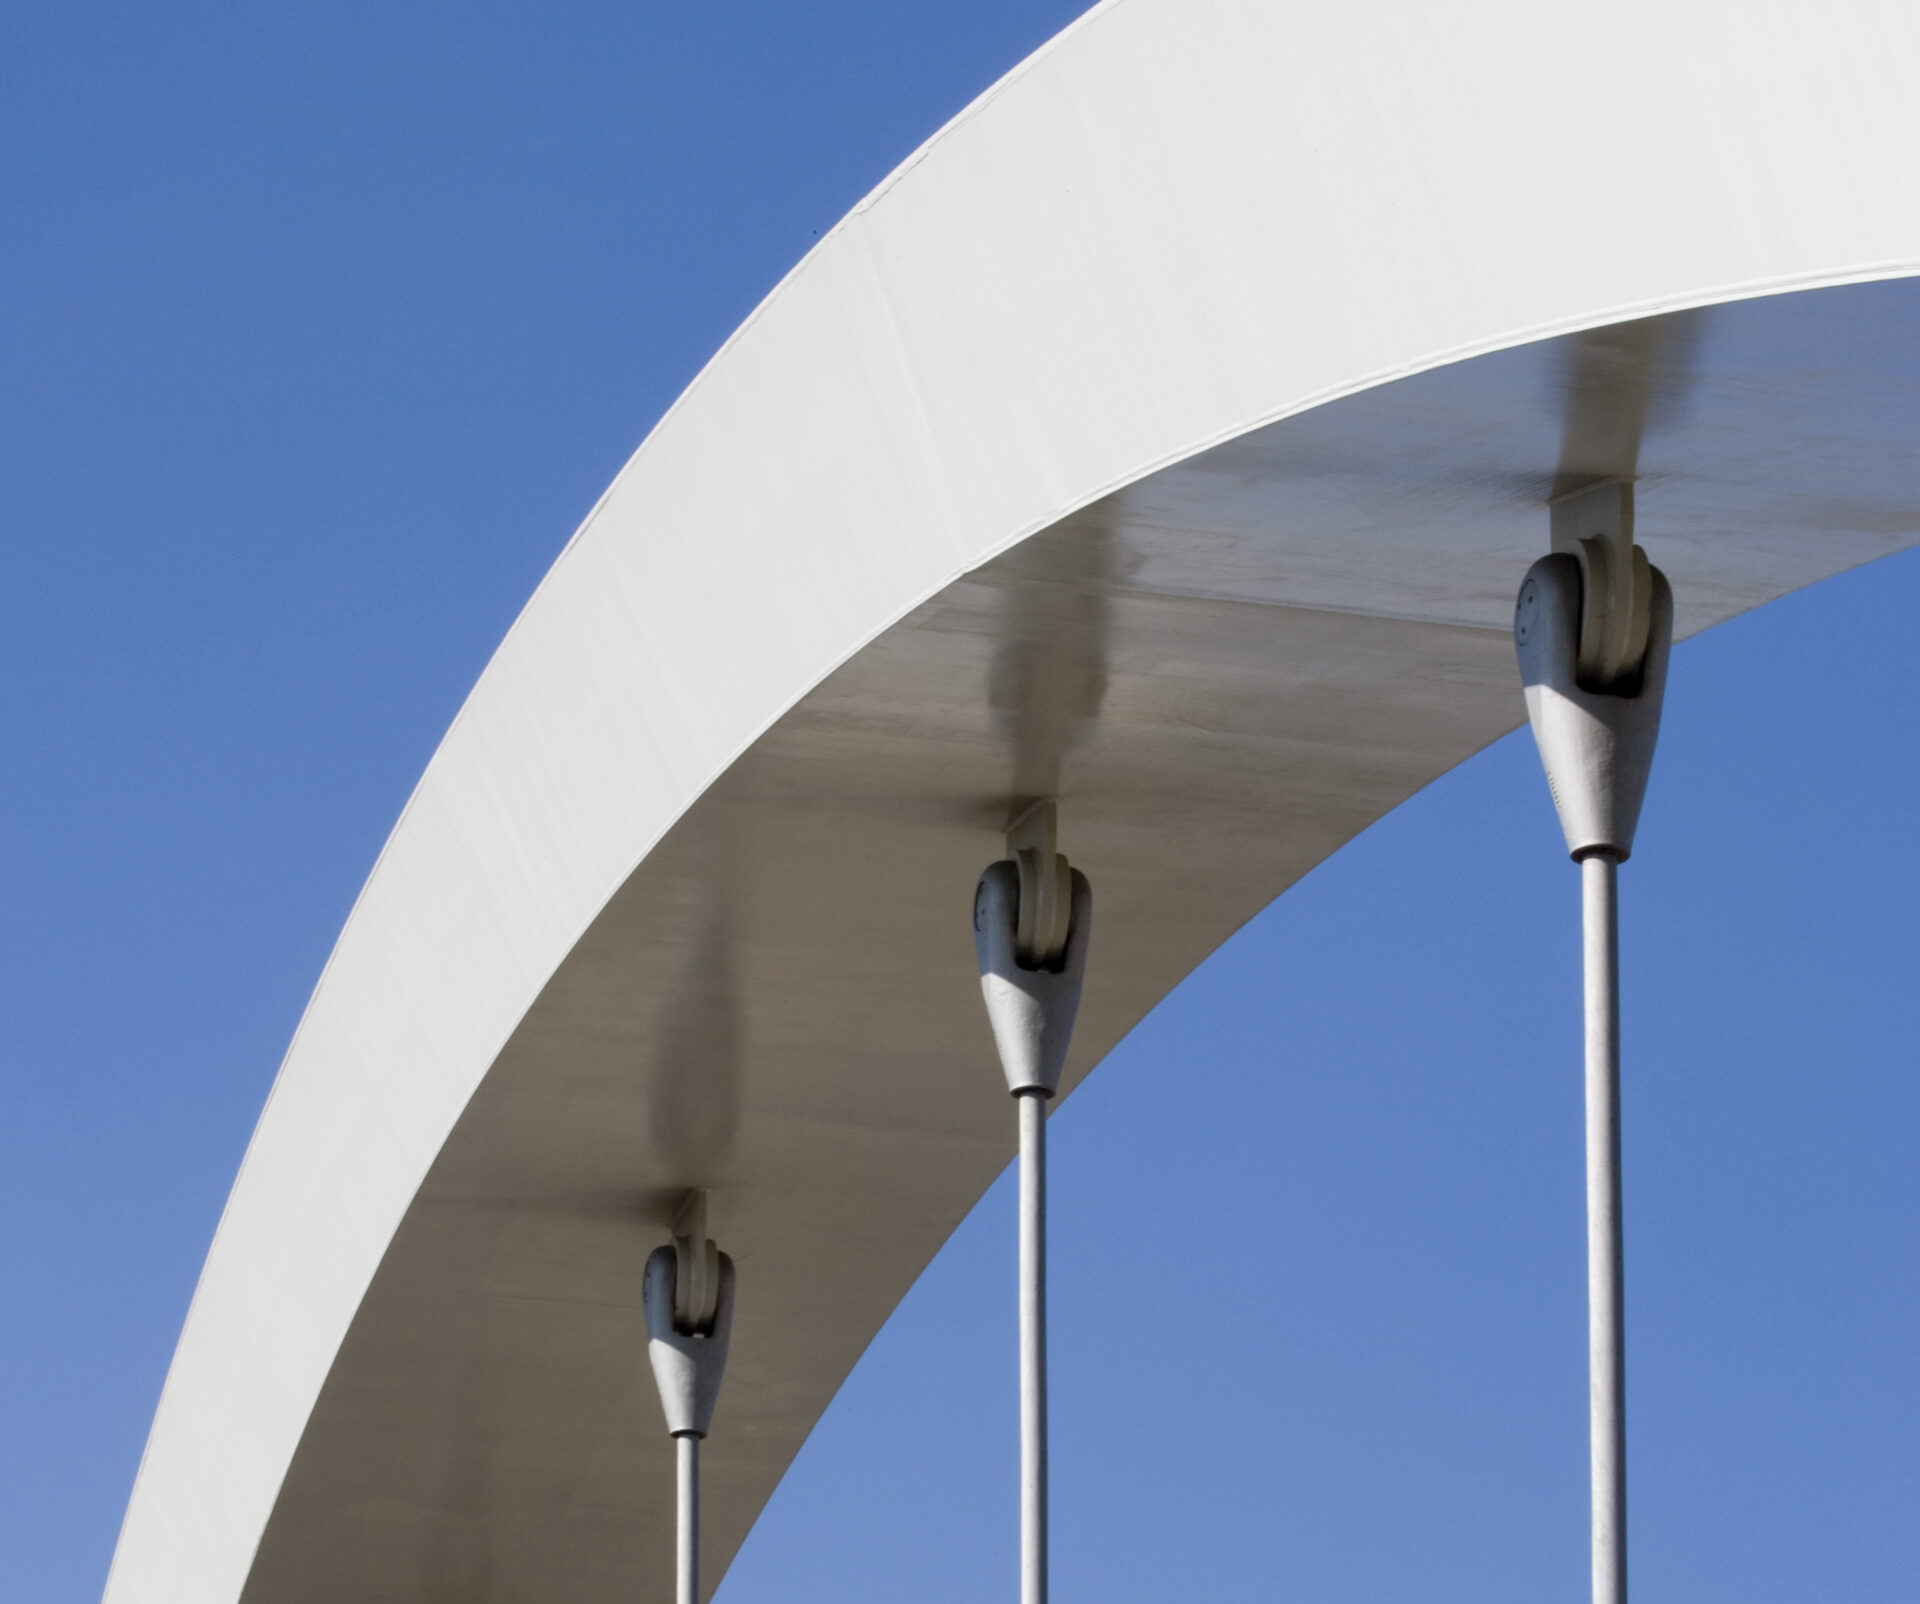 Stratford Olympic Park bridge 20, close up of top of the cable stayed arch